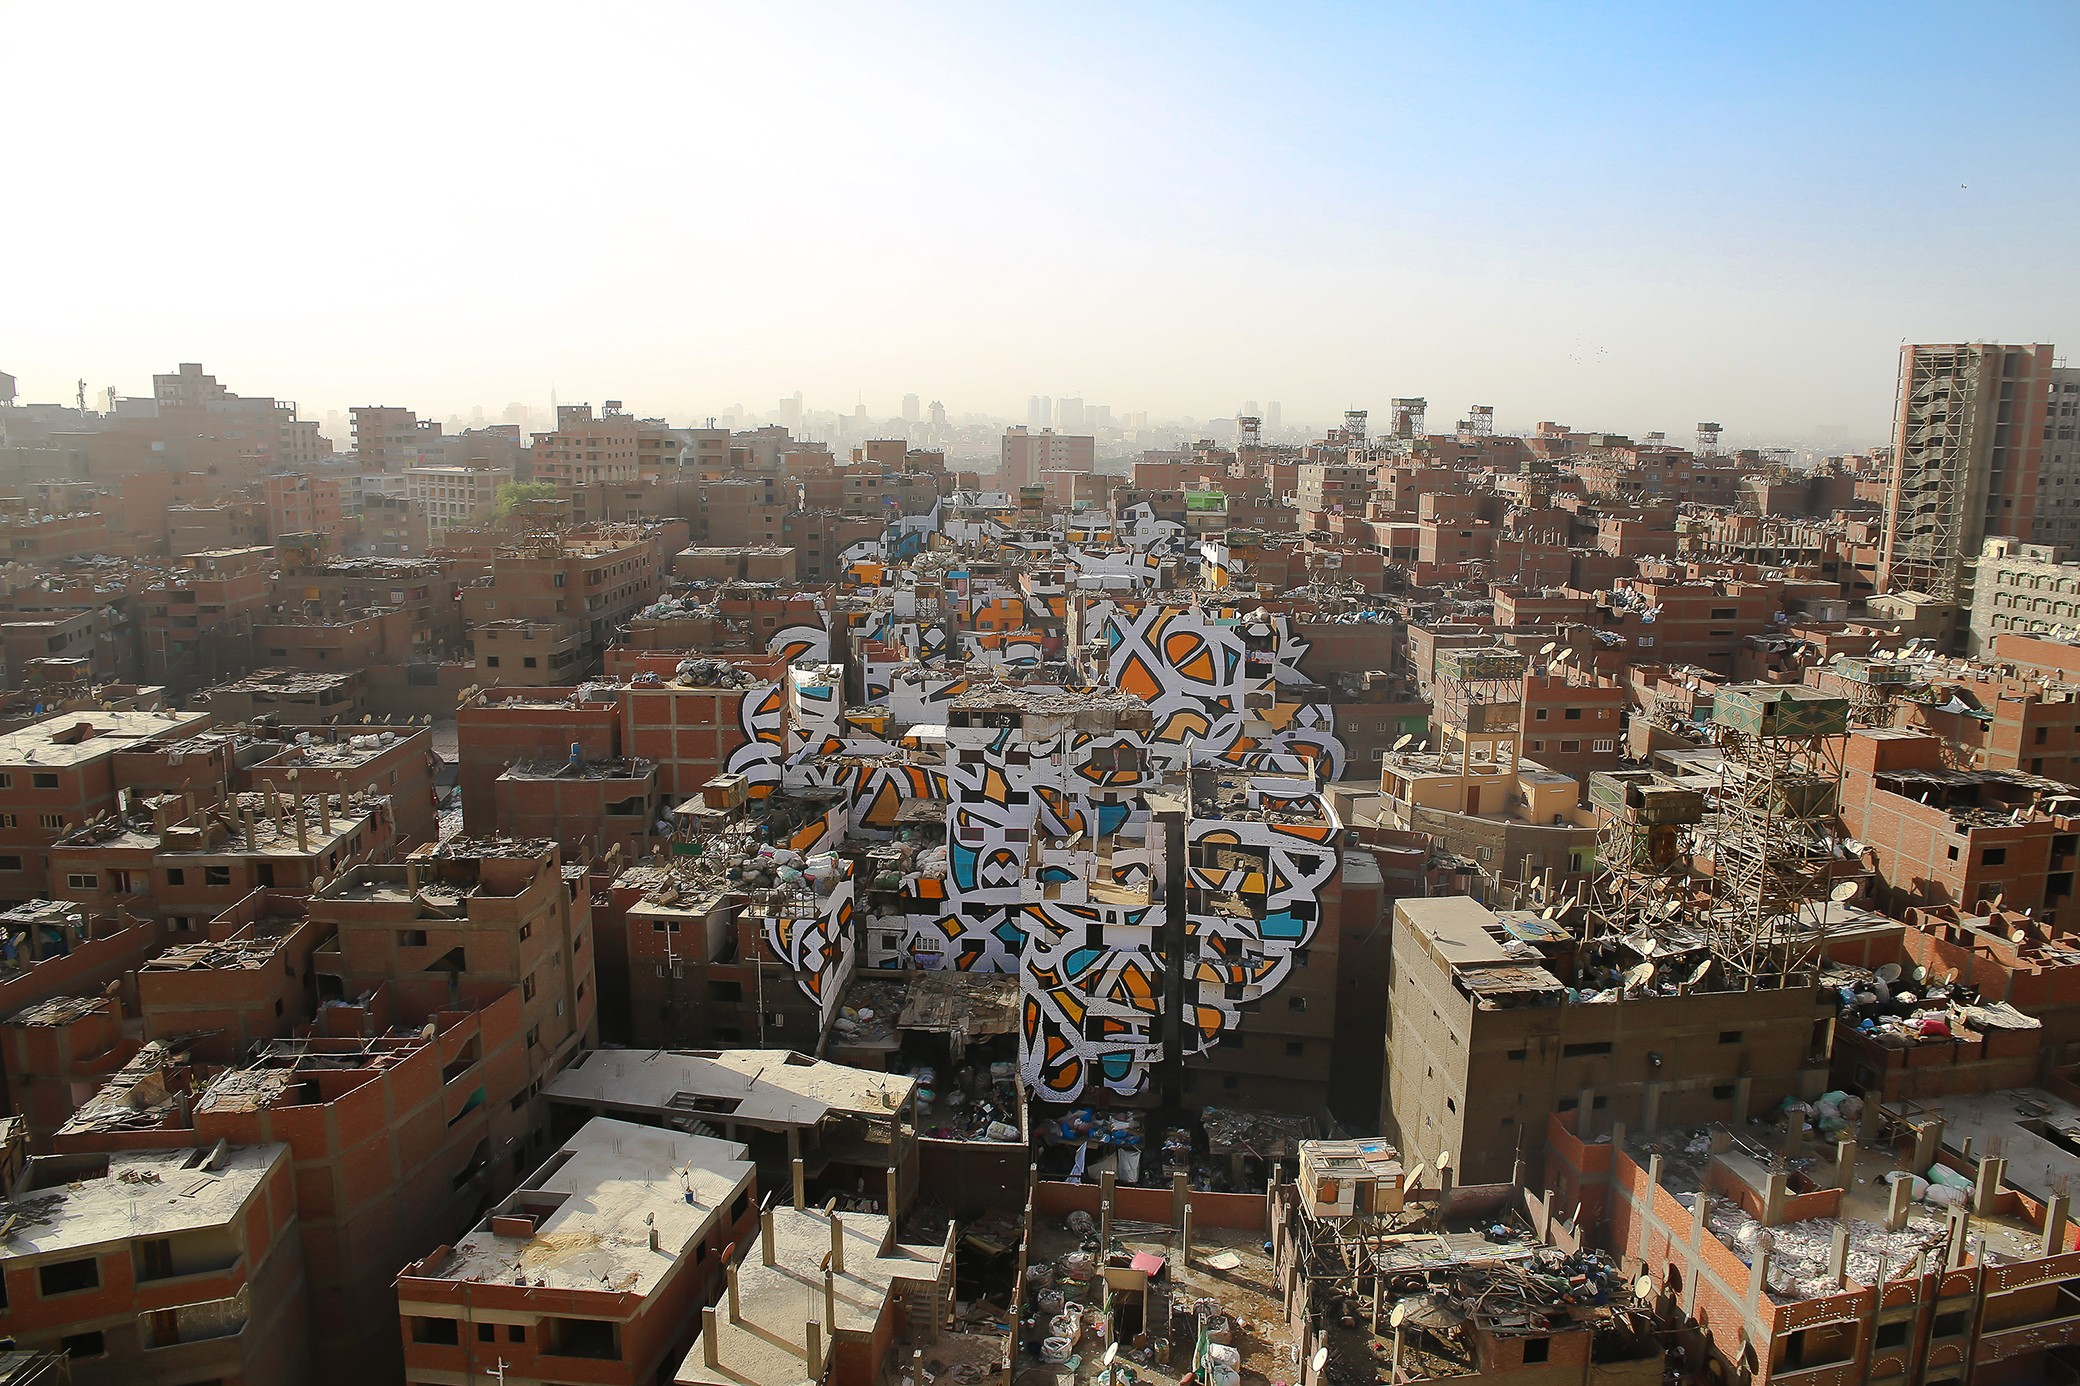 El Seed Calligraffiti on Zaraeeb. The view from Moqattam Mountain in Egypt